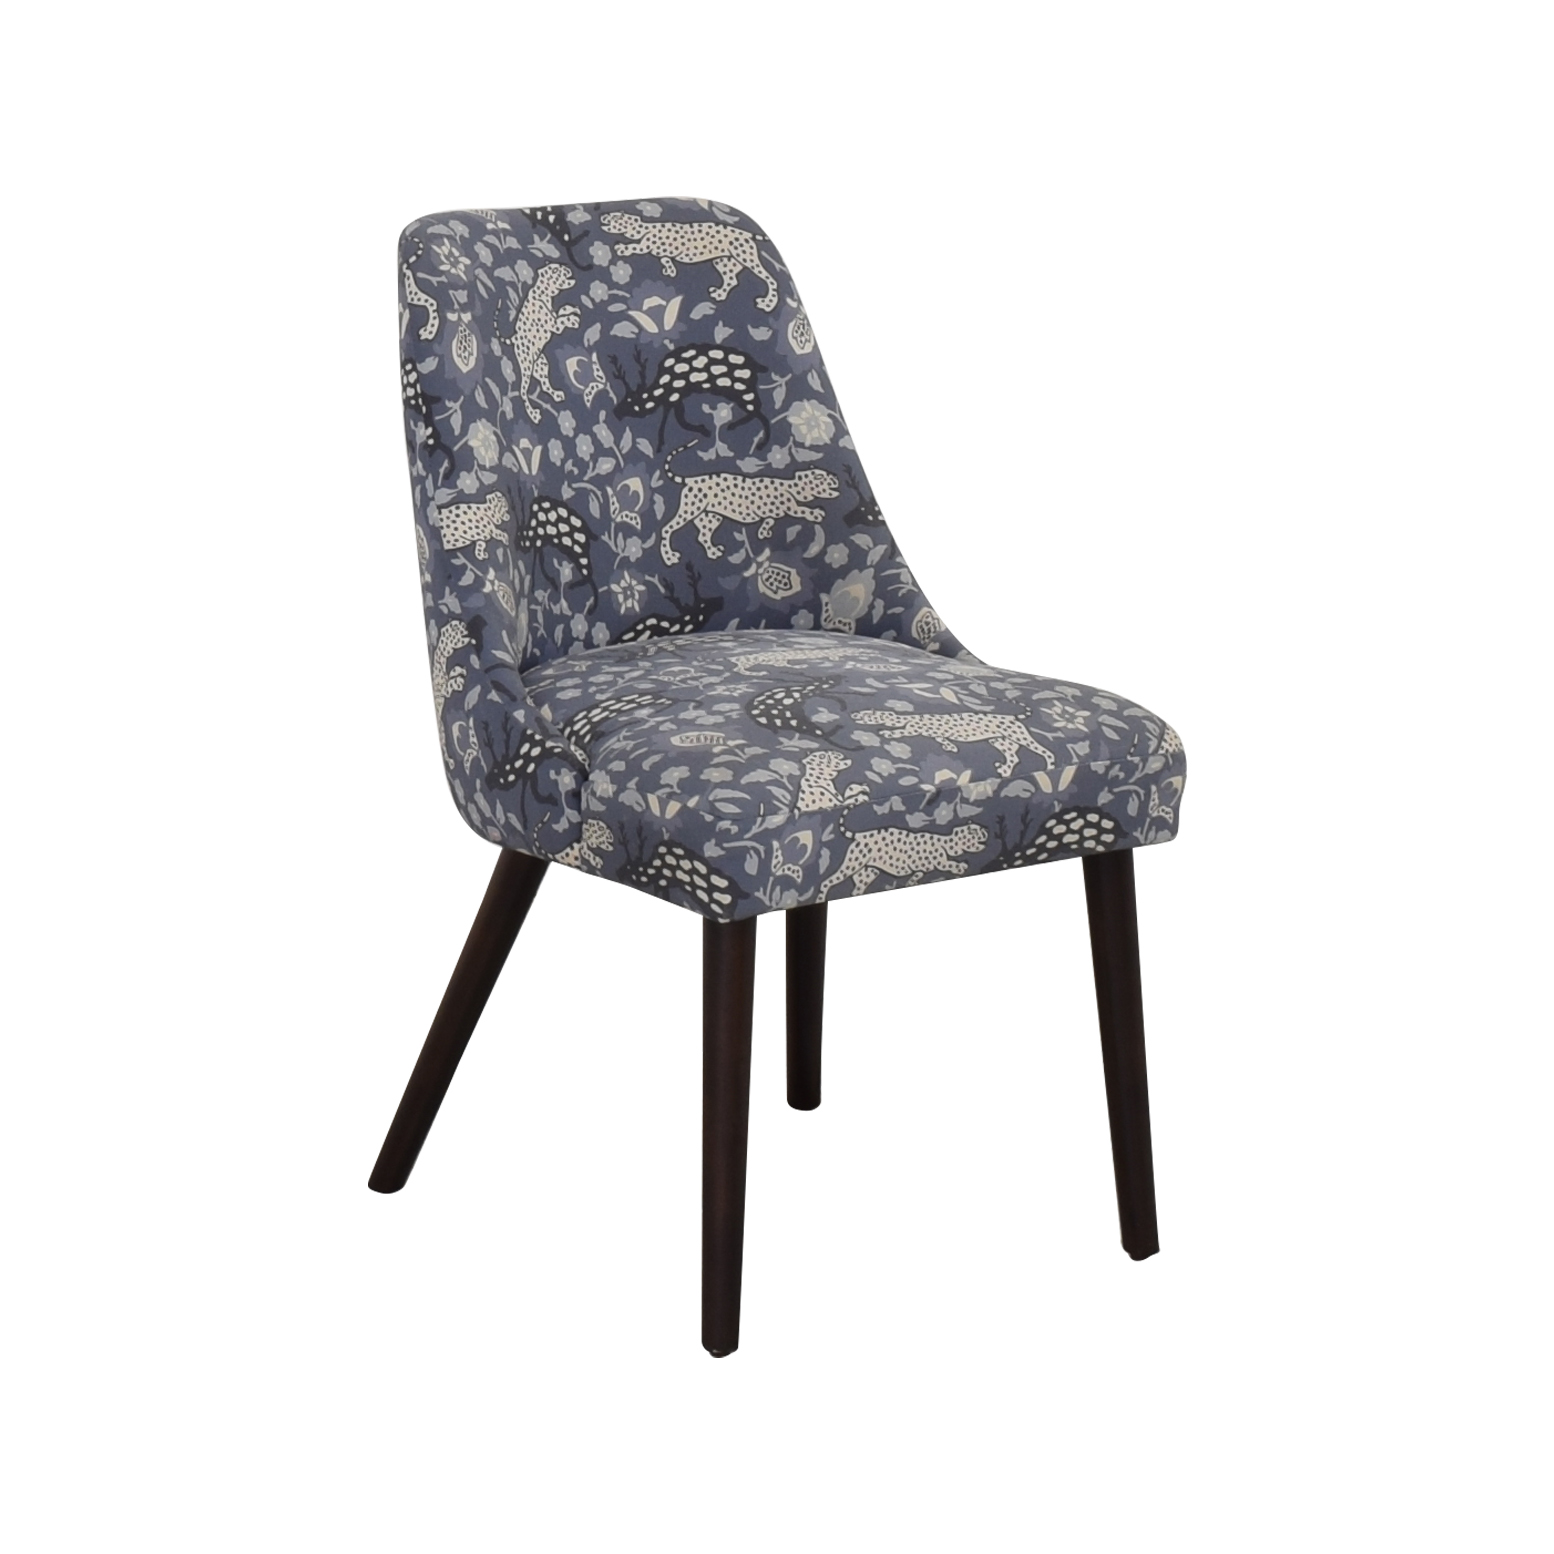 Skyline Patterned Upholstered Dining Chair / Chairs